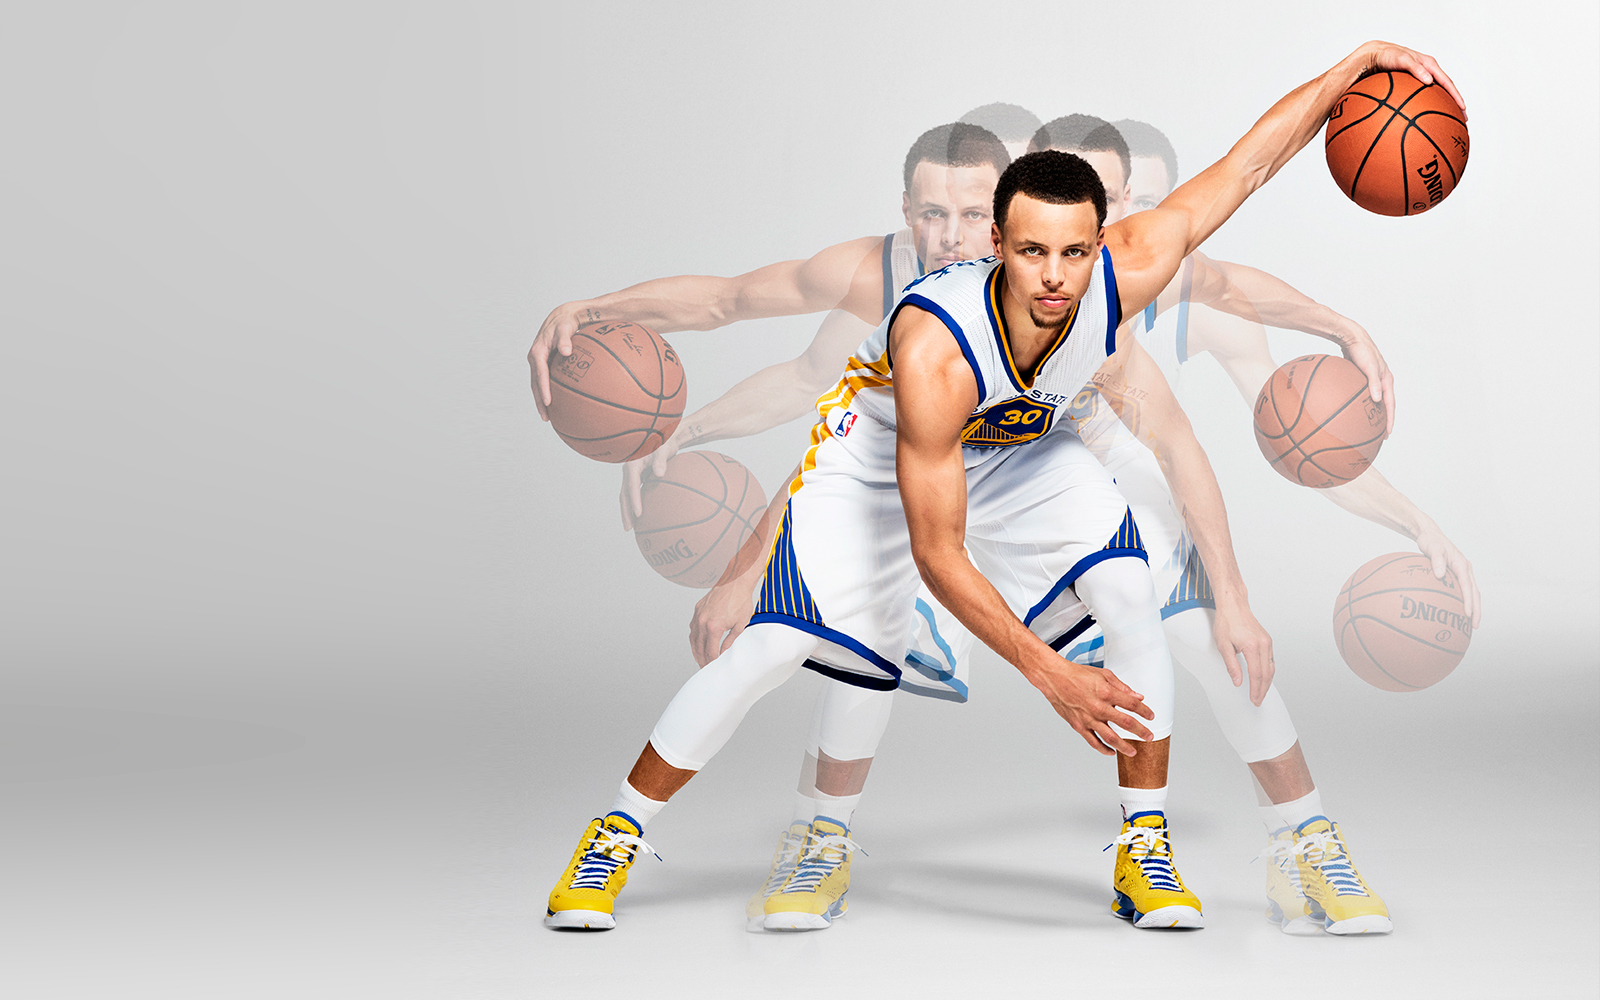 stephen-curry-hd-wallpaper